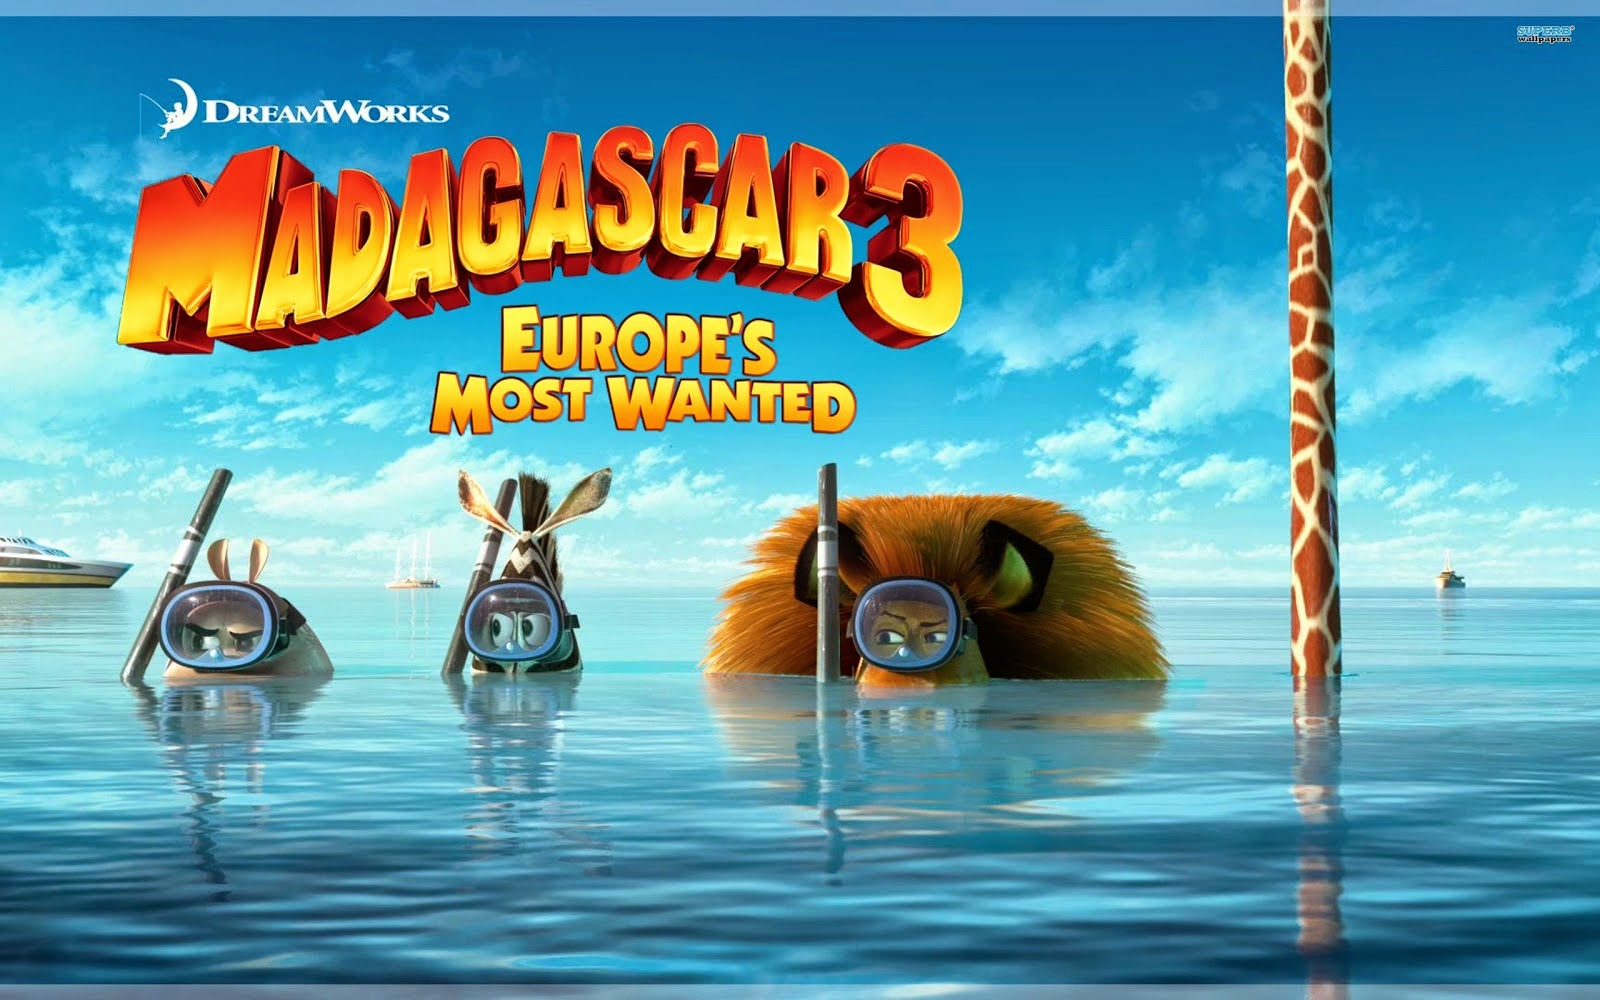 gallerycartoon.blogspot.com.Madagascar 3 3D Cartoon Wallpapers HD